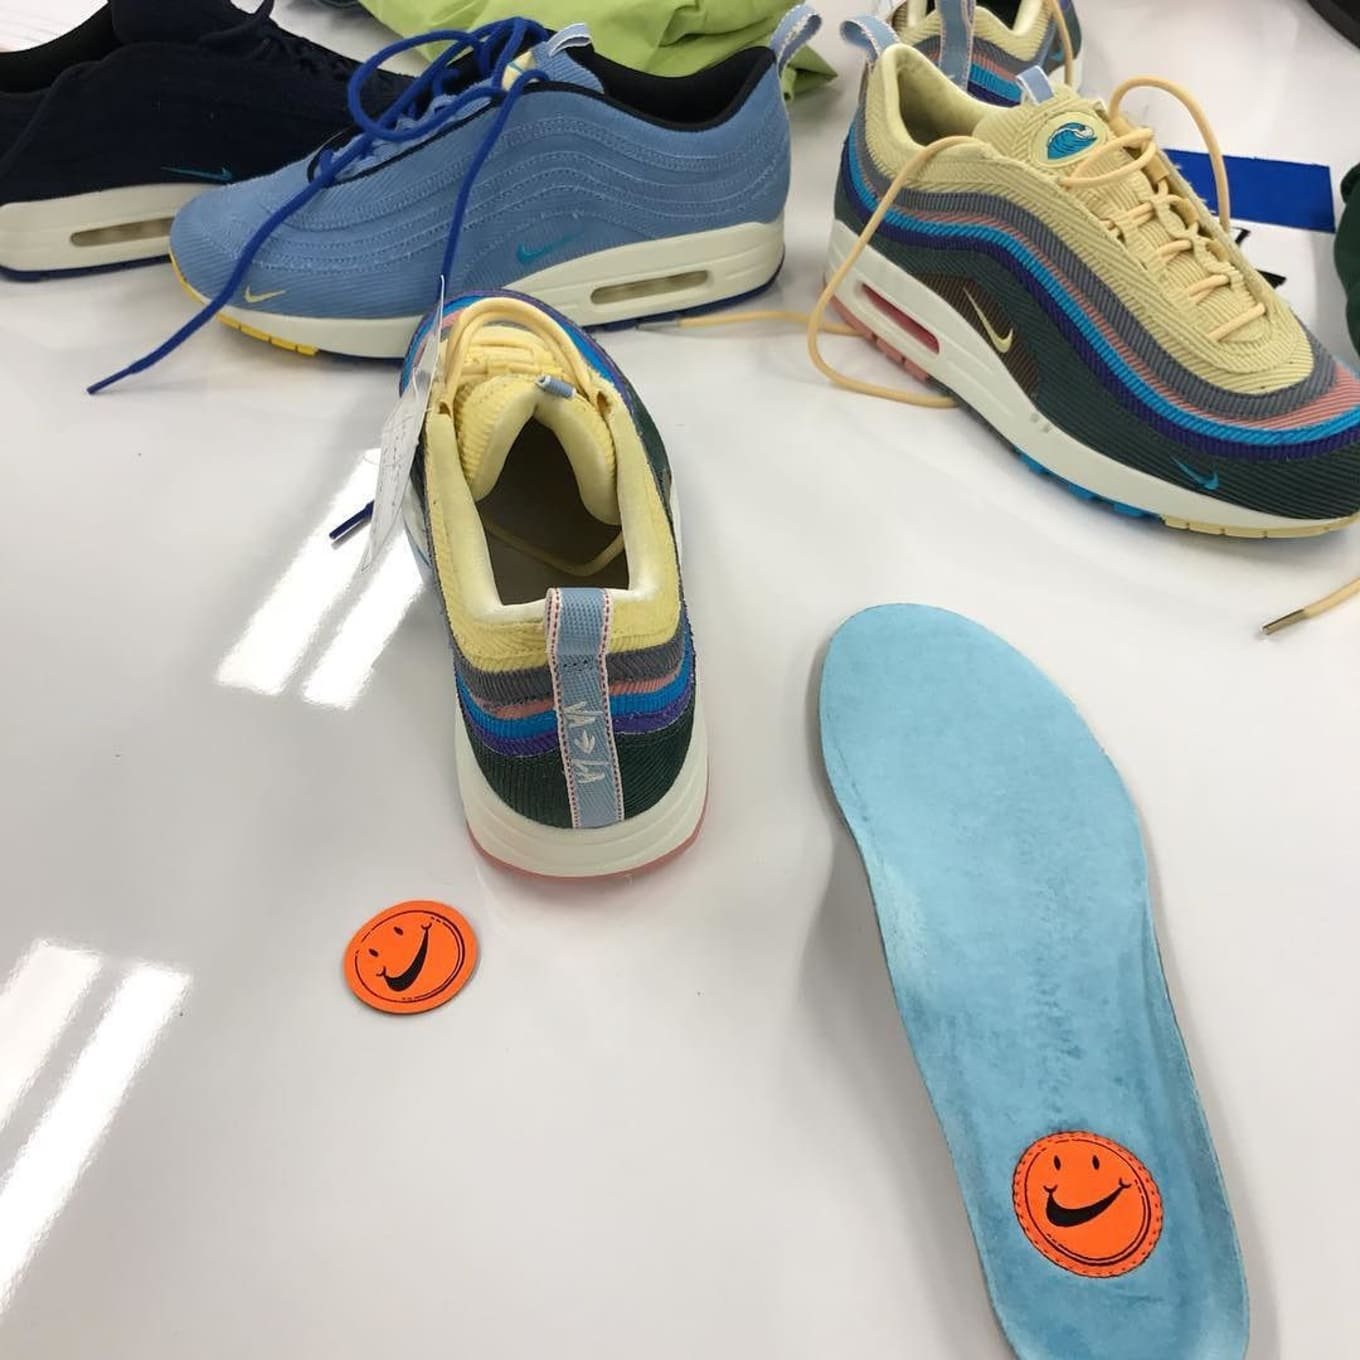 sports shoes 3bb9d 9f1c9 Sean Wotherspoon x Nike Air Max 1/97 Samples | Sole Collector